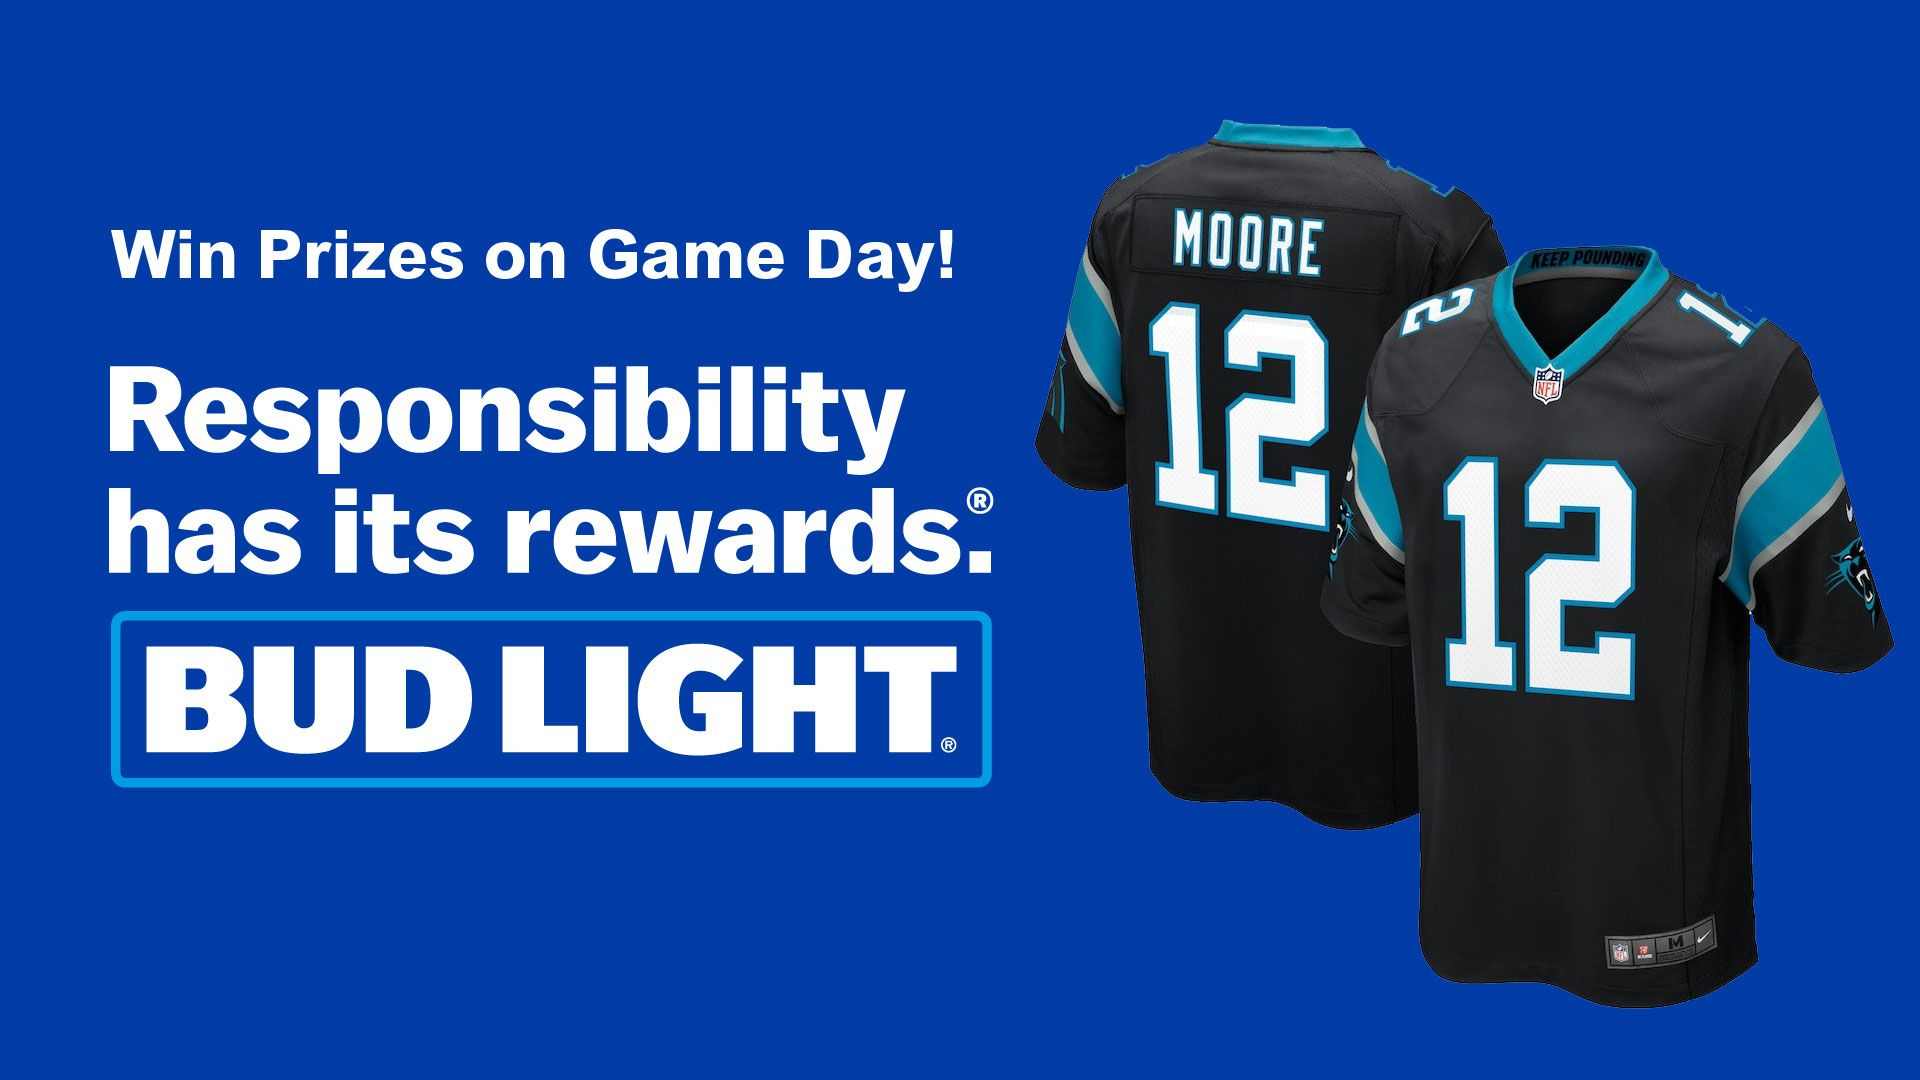 Responsibility Has Its Rewards, presented by Bud Light